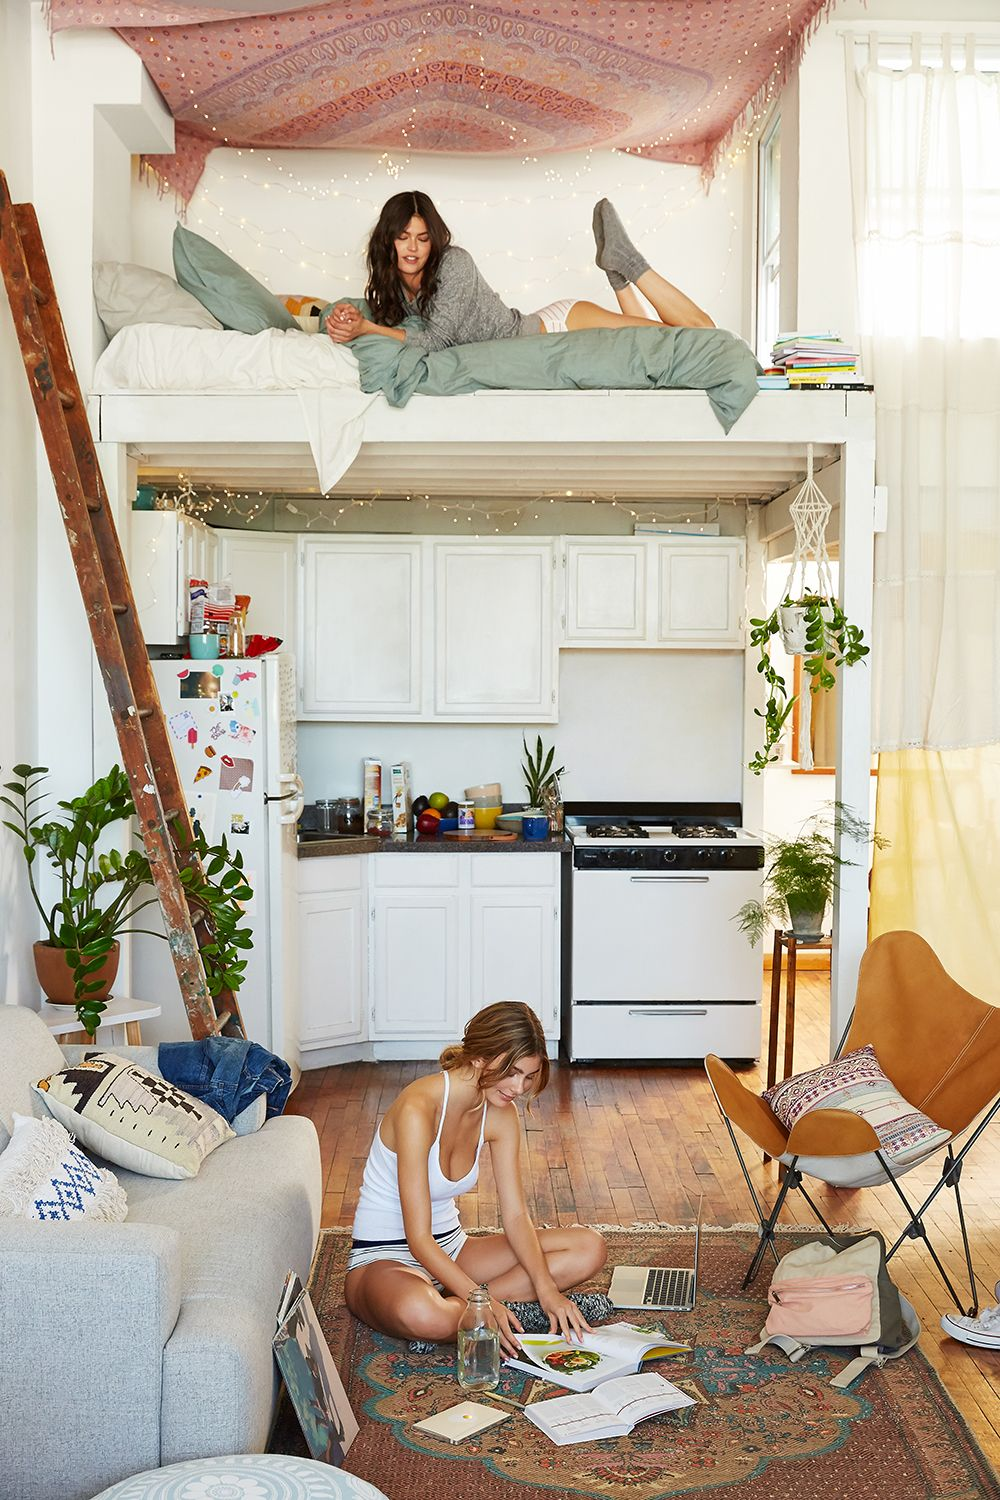 Loft bed railing ideas  Pin by Jemma Jolly on Dream home  Pinterest  Tiny spaces Spaces